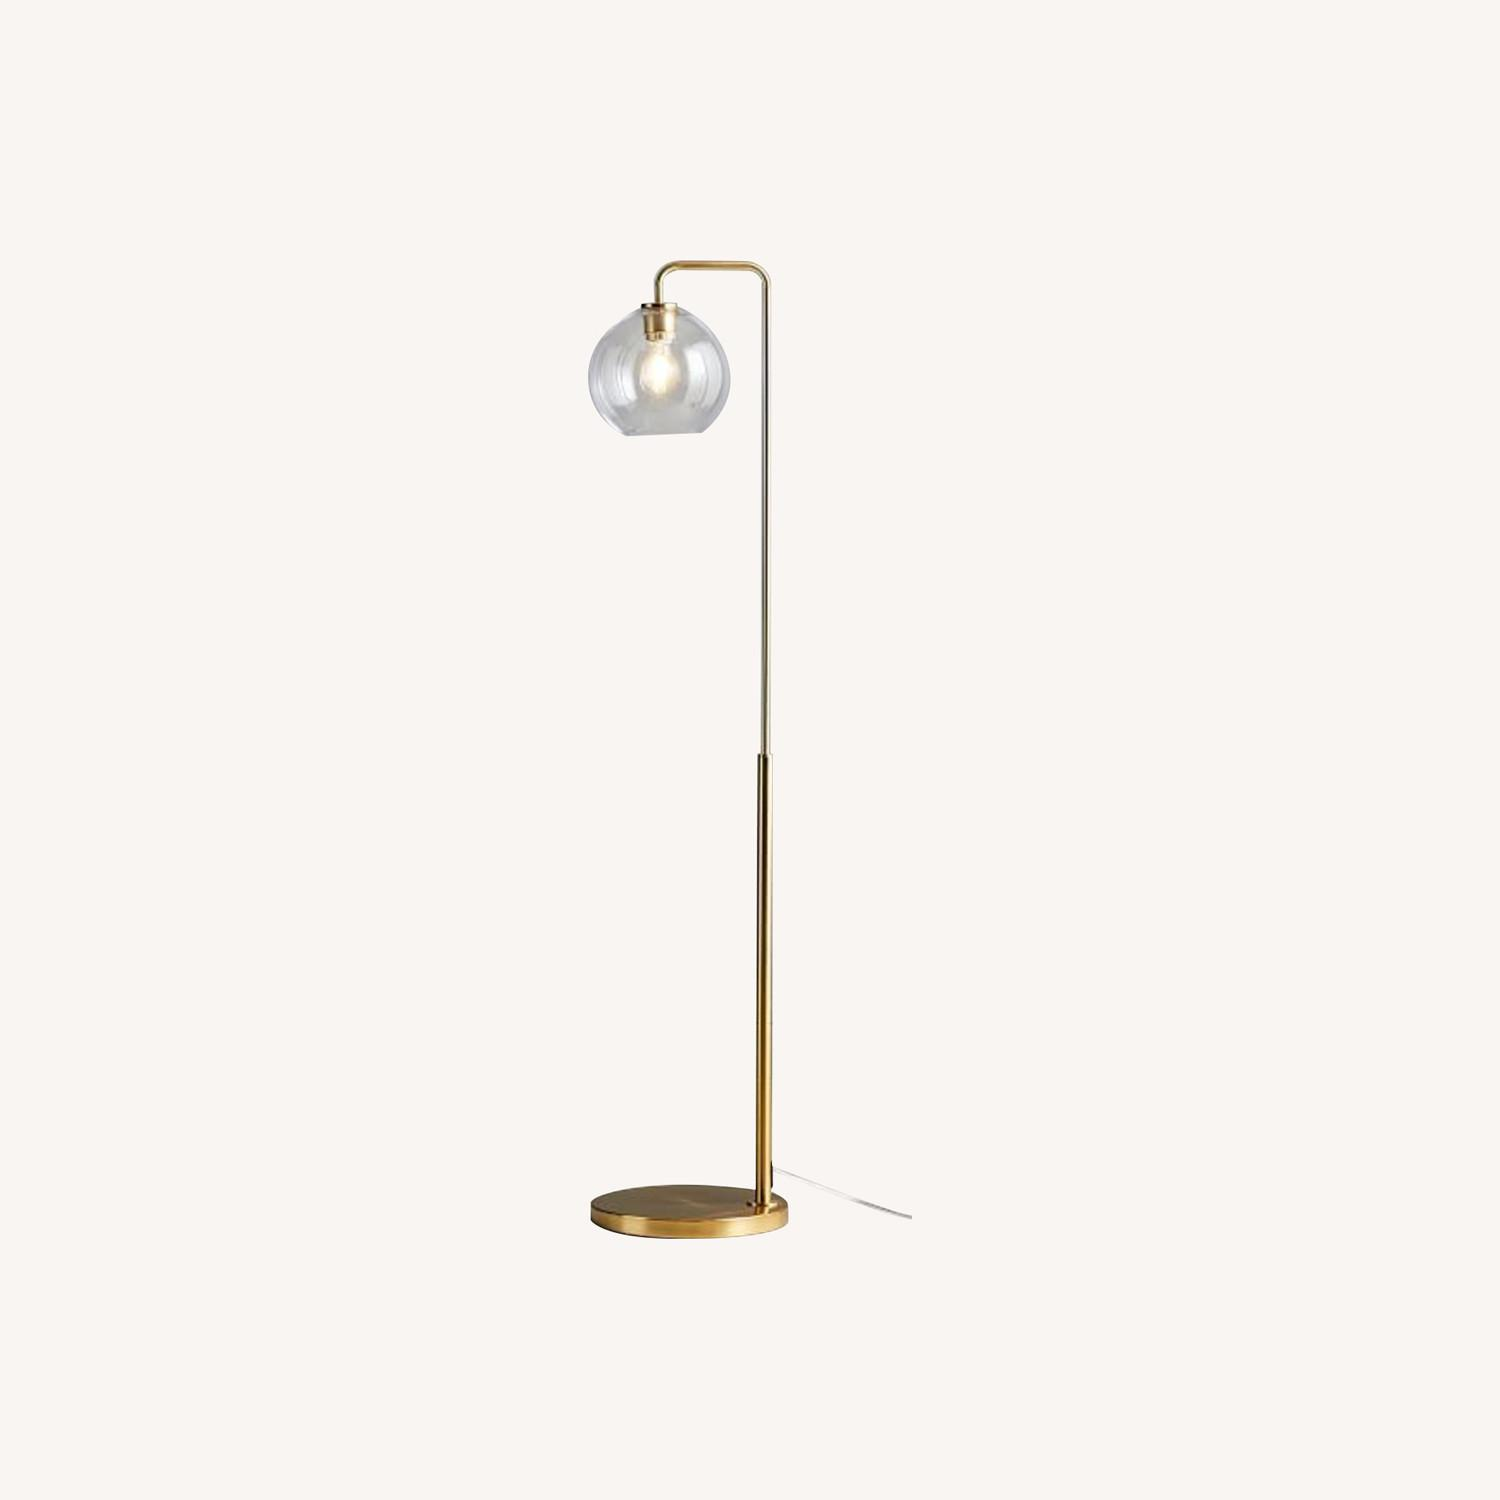 West Elm Sculptural Glass Globe Floor Lamp - Clear - image-0